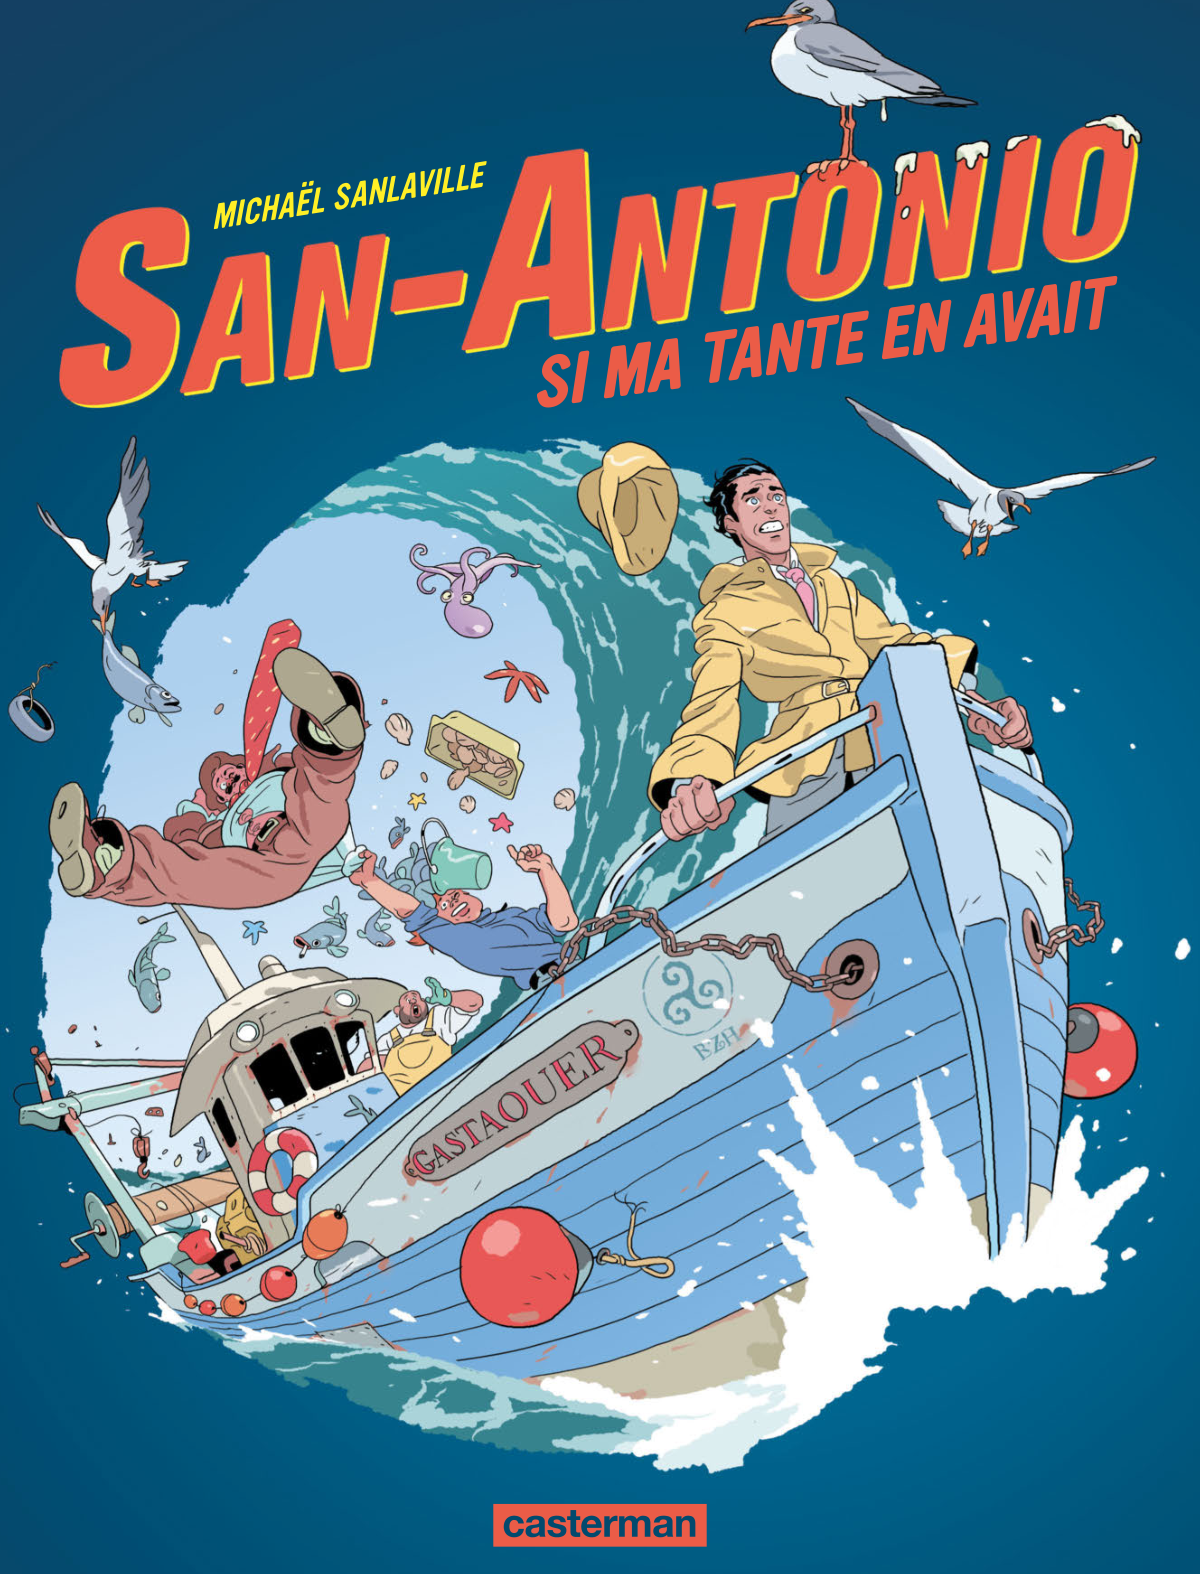 Bandes à part : Mythique San Antonio